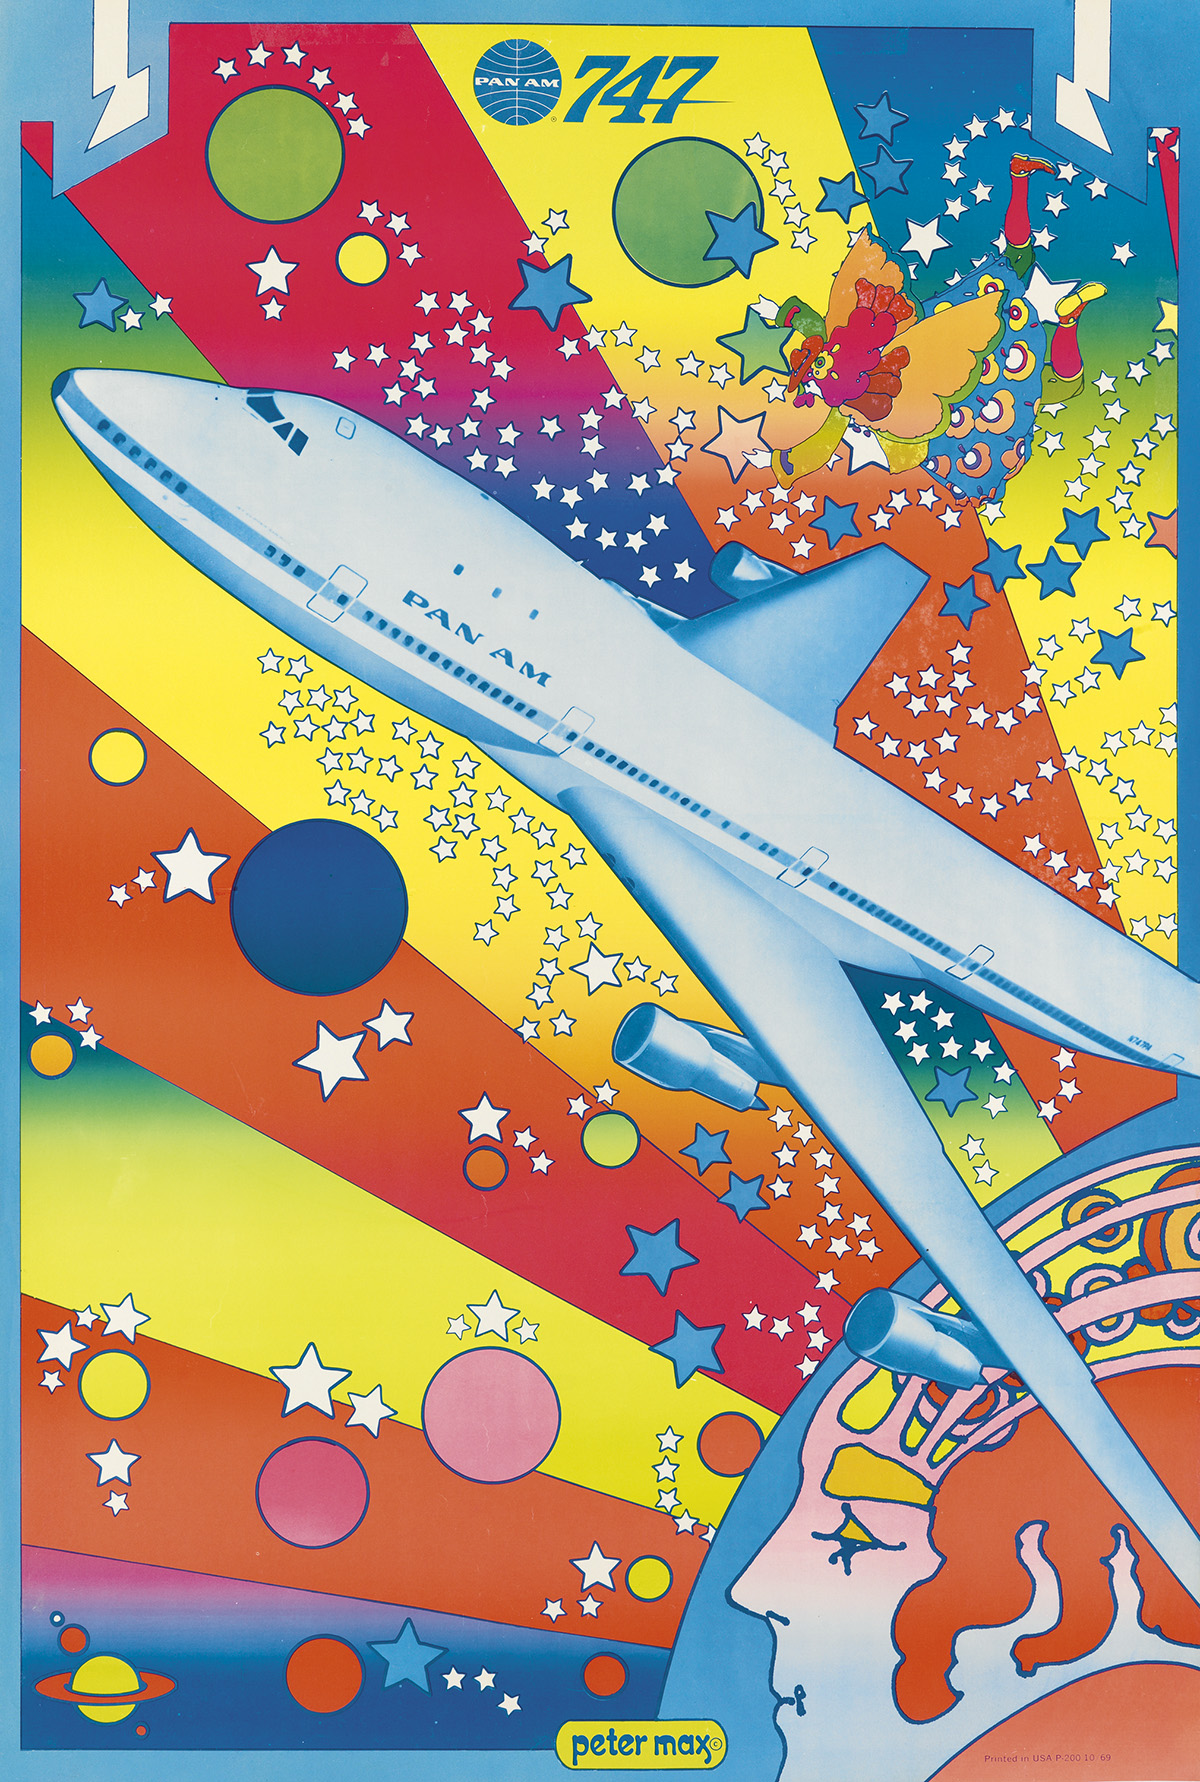 PETER-MAX-(1937--)-PAN-AM-747-1969-42x28-inches-106x71-cm